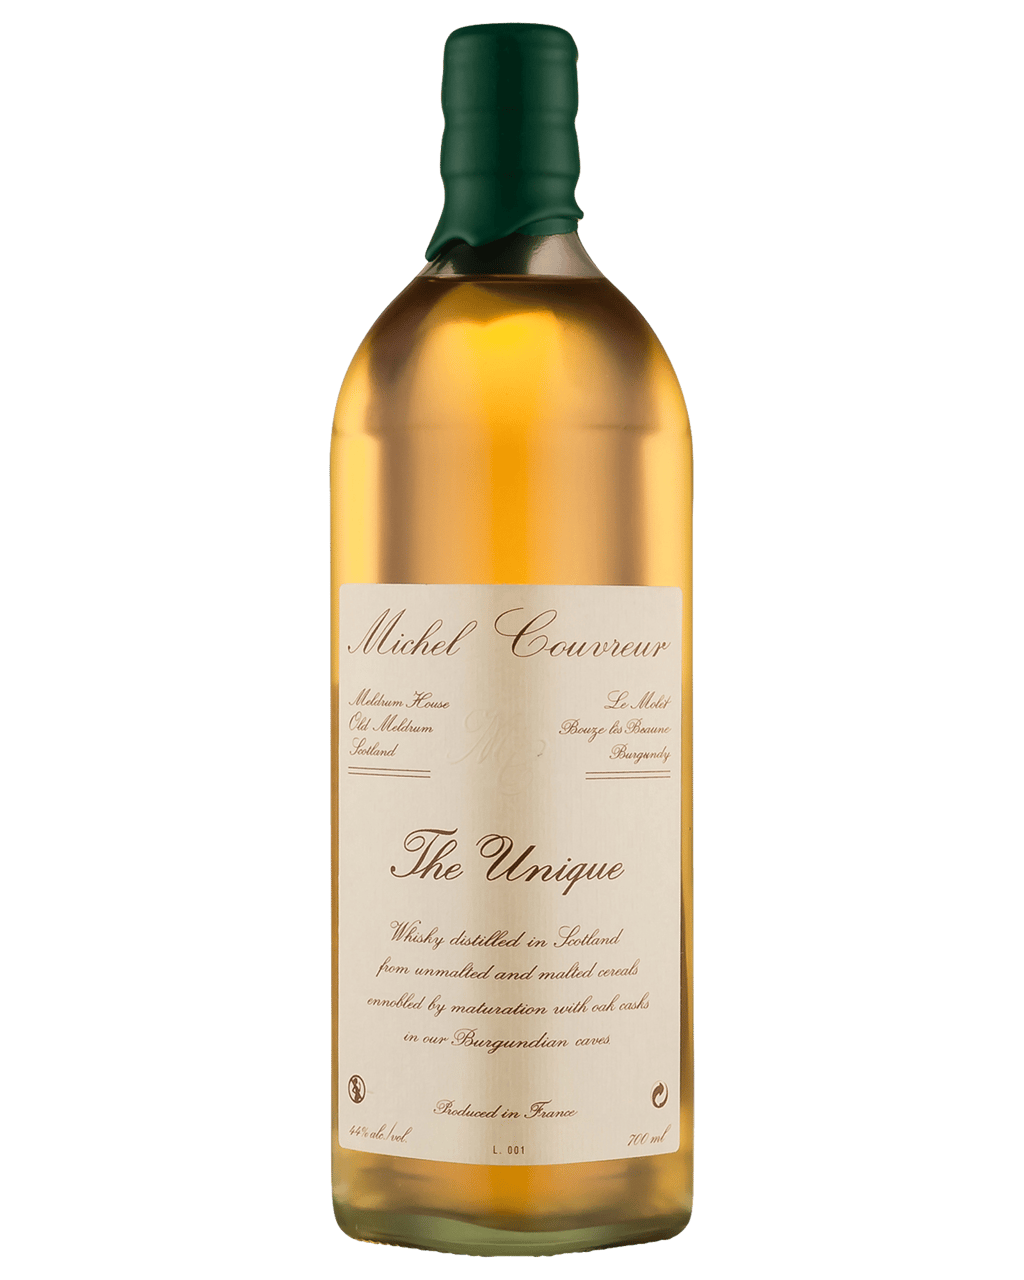 d4ae0d5035e53d Michel Couvreur The Unique Whisky 700mL